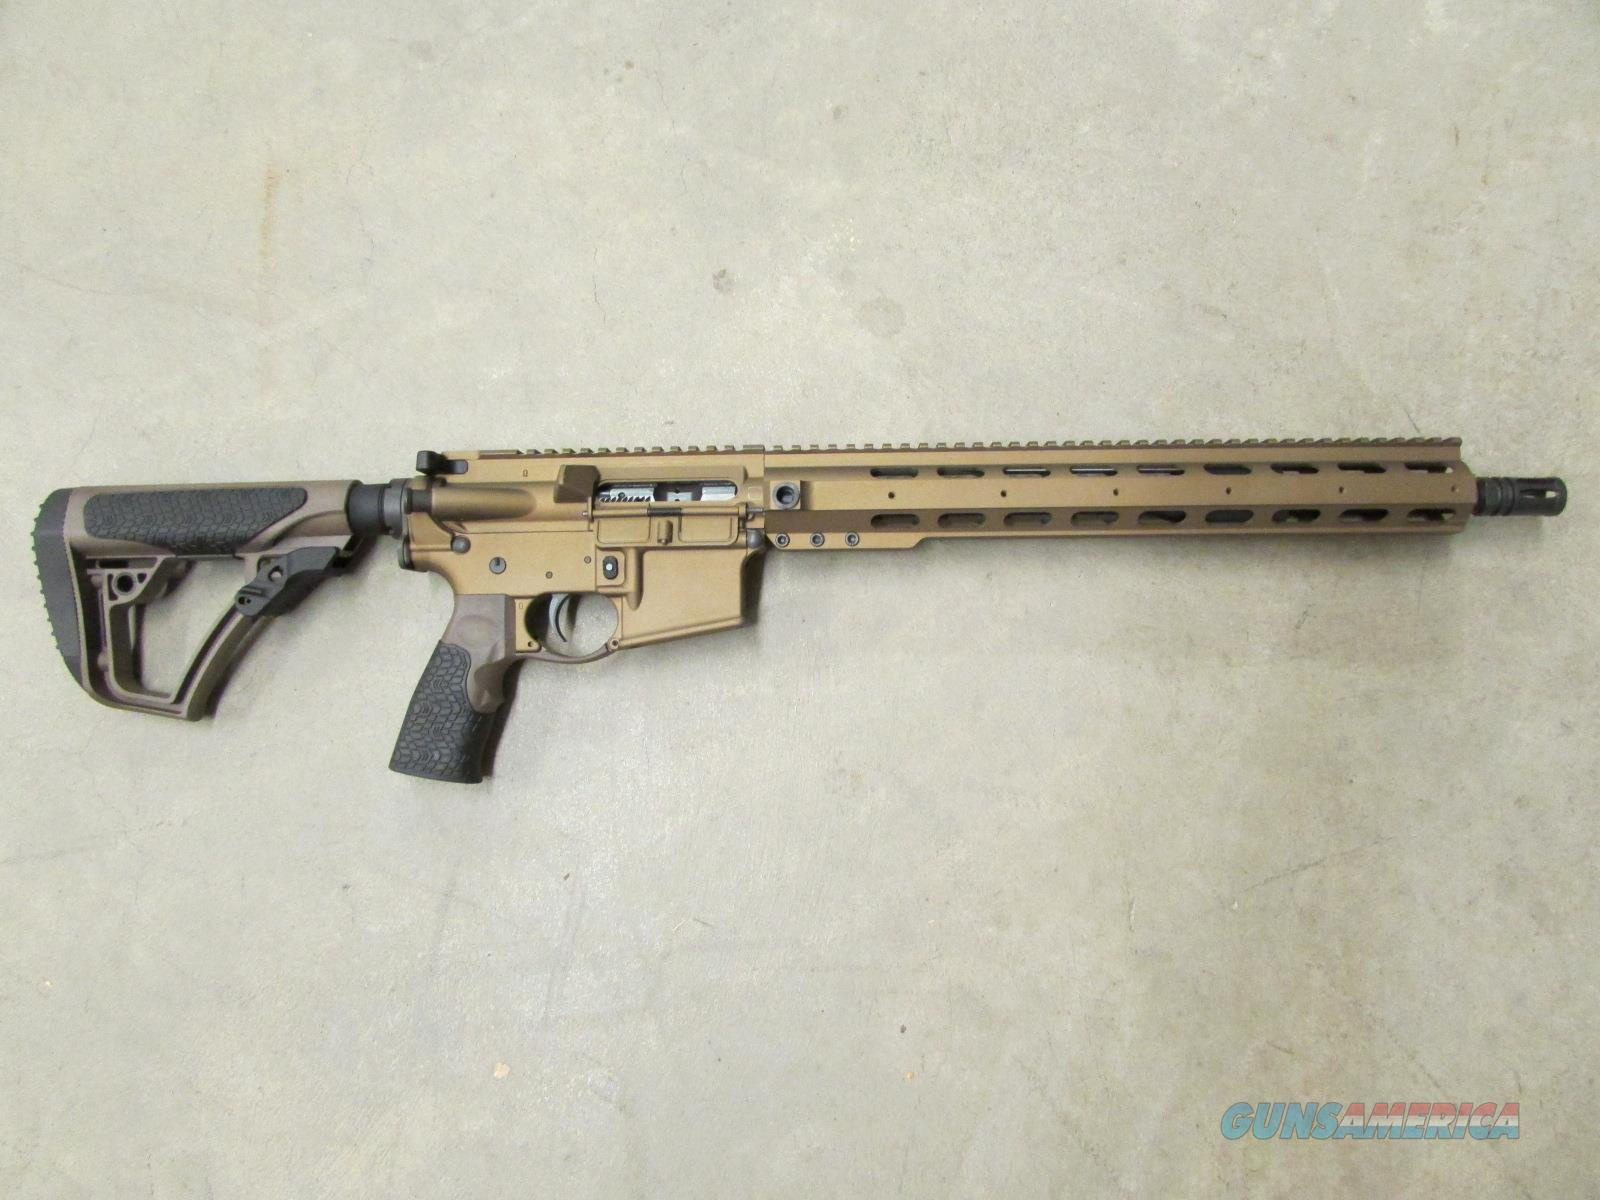 "ANDERSON COMPLETE AR-15 BURNT BRONZE CERAKOTE 5.56 NATO 16""  Guns > Rifles > AR-15 Rifles - Small Manufacturers > Complete Rifle"